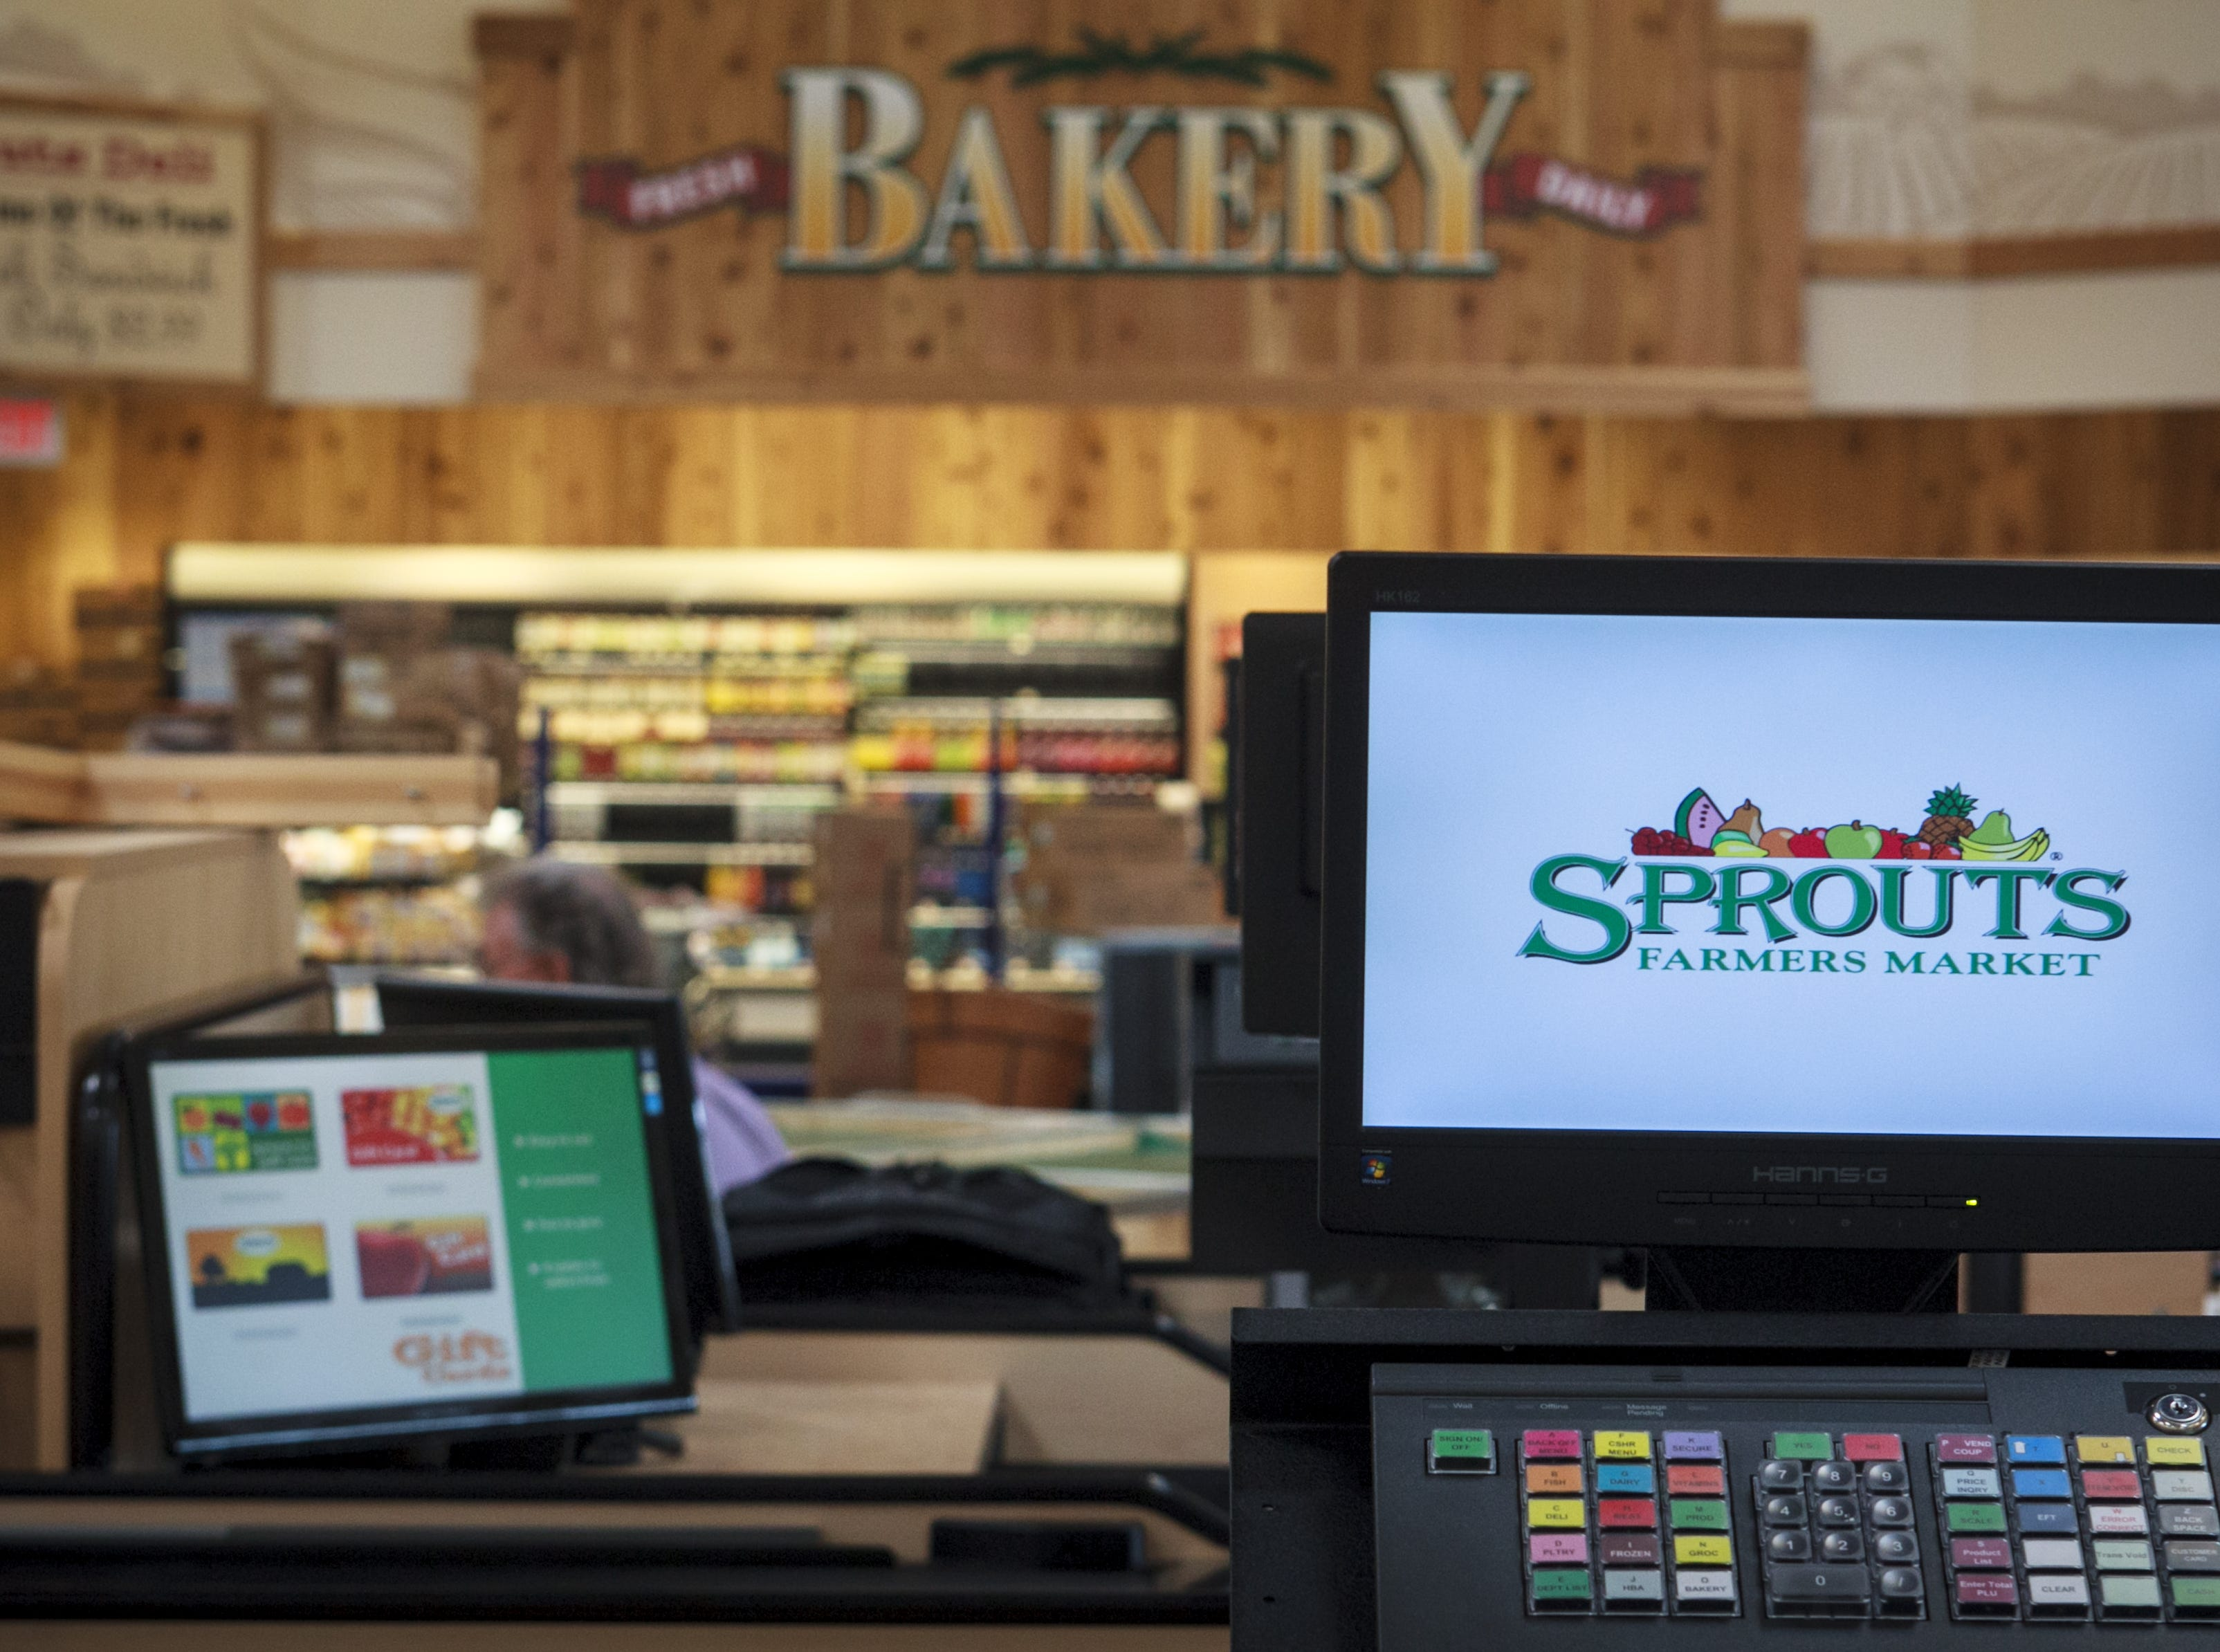 Sprouts Farmers Market, hiring 180. The Phoenix-based grocer is adding positions ranging from cashier to store manager. More info: about.sprouts.com/careers.